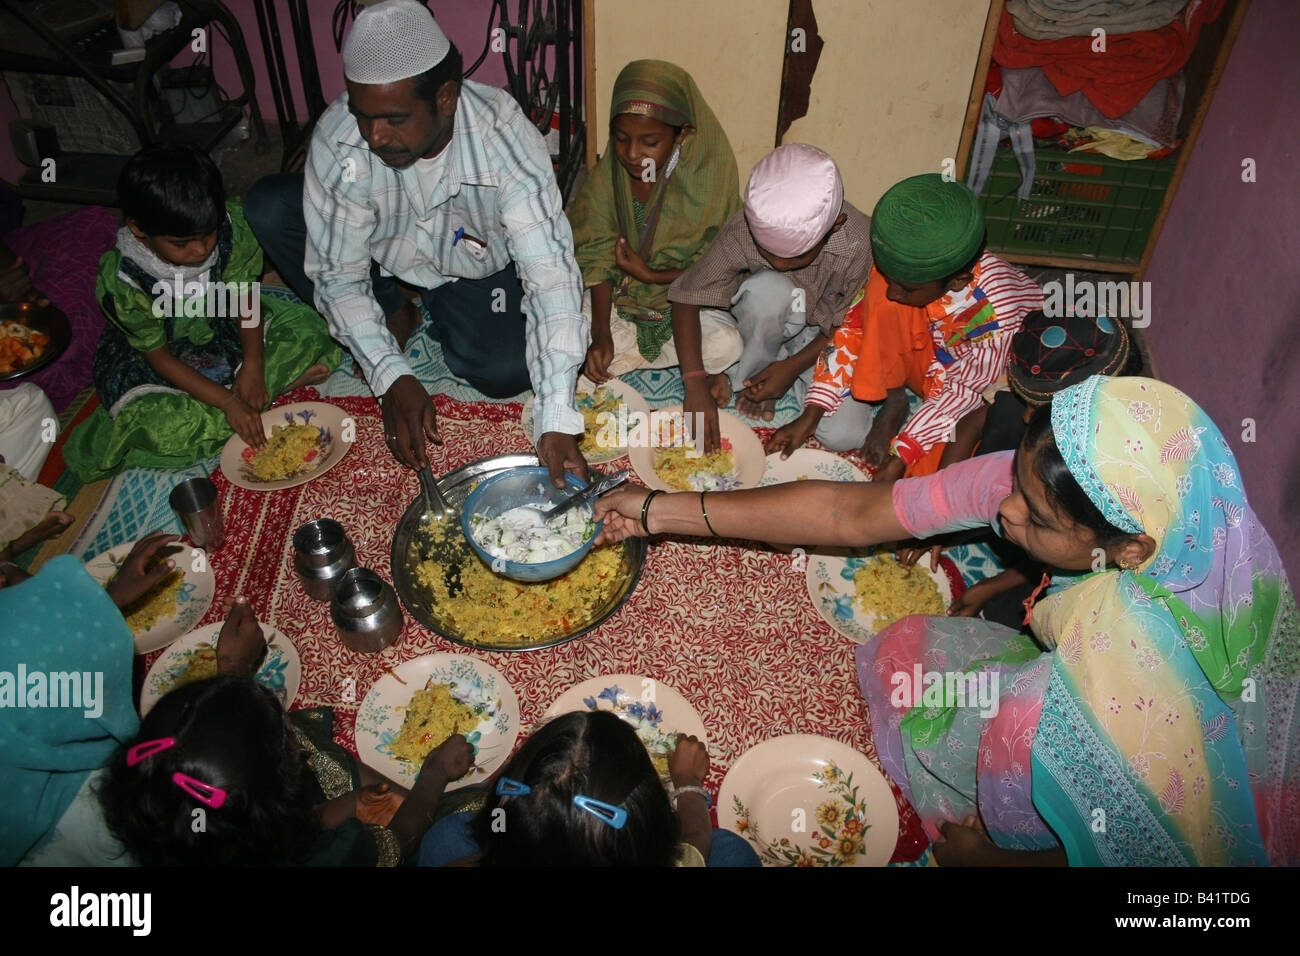 dating muslim during ramadan During ramadan, the far-flung muslim communities of the world are unified by one food: the date, one of the earliest cultivated crops and an.